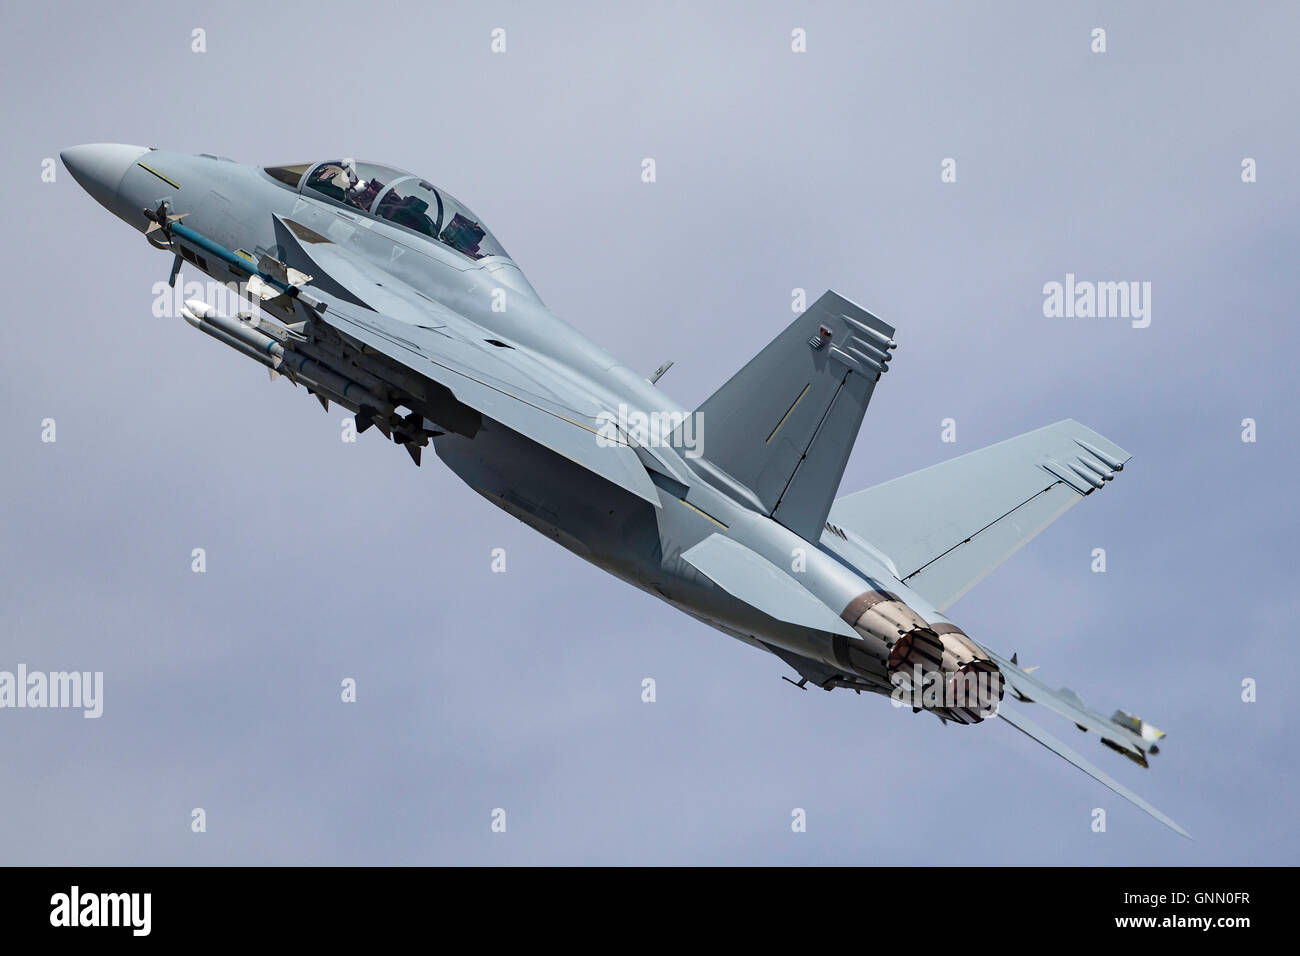 United States Navy Boeing F/A-18F Super Hornet multirole fighter aircraft. Stock Photo